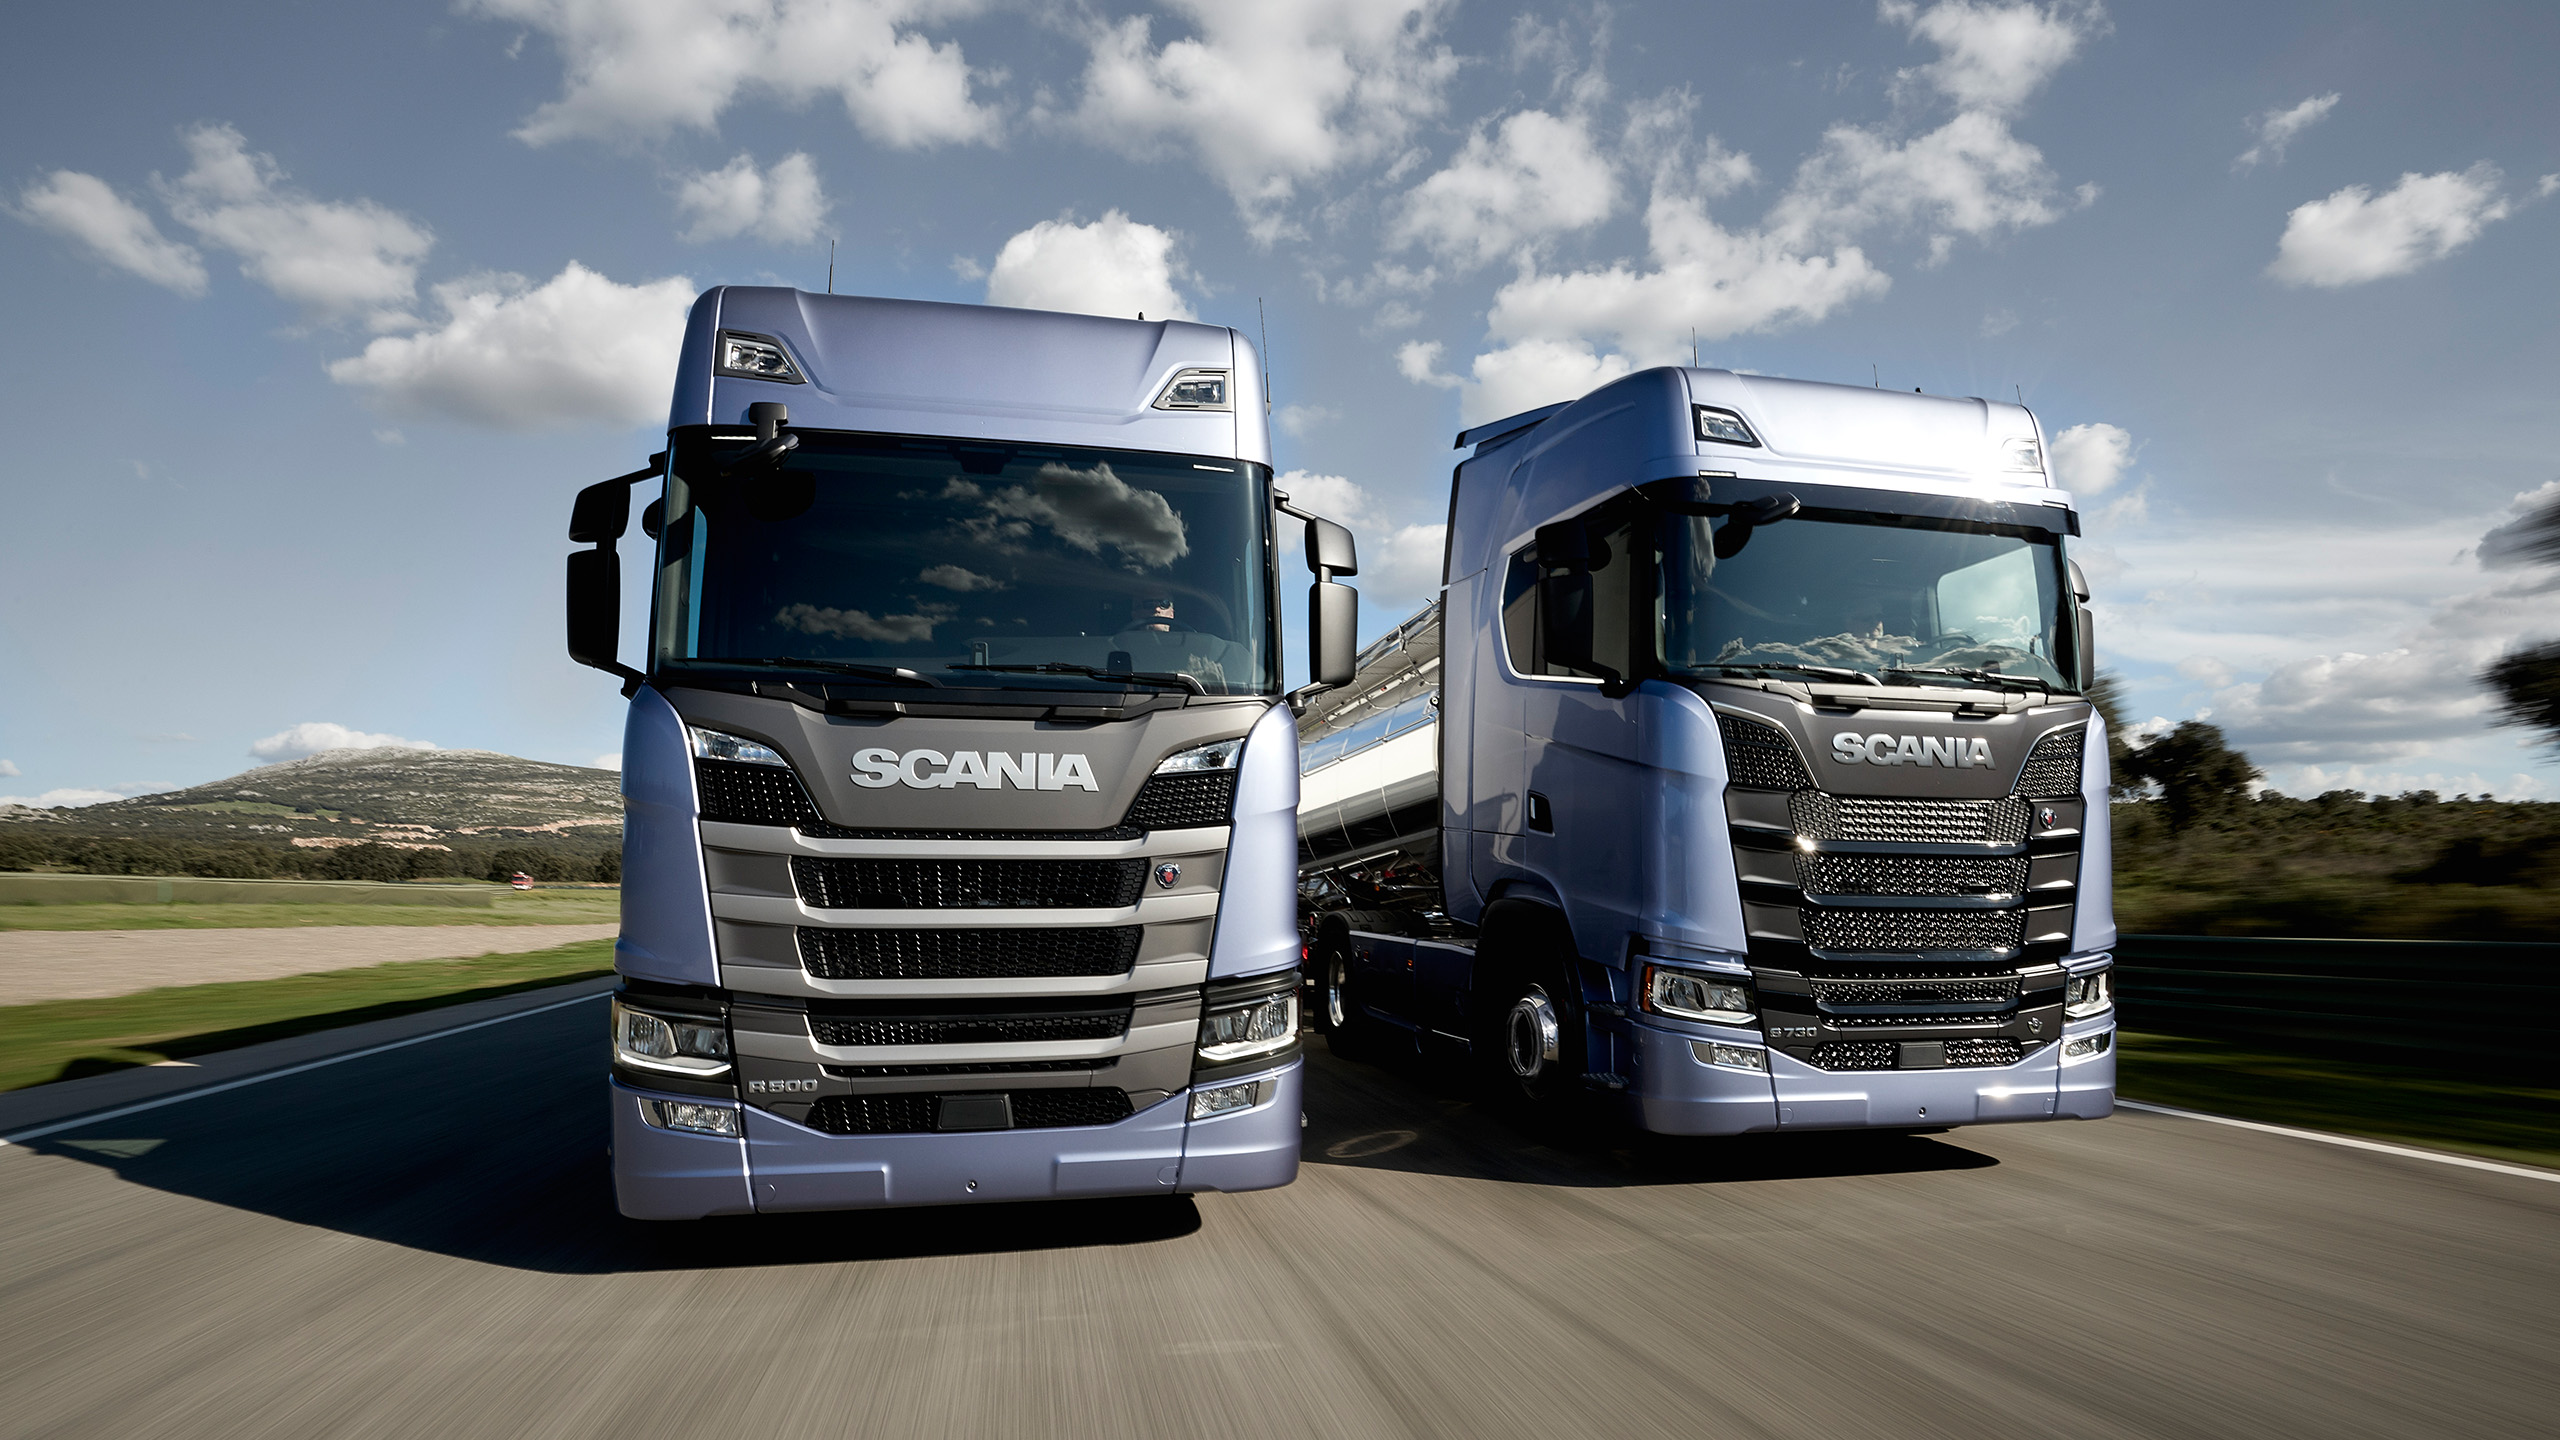 A pair of next generation Scania trucks